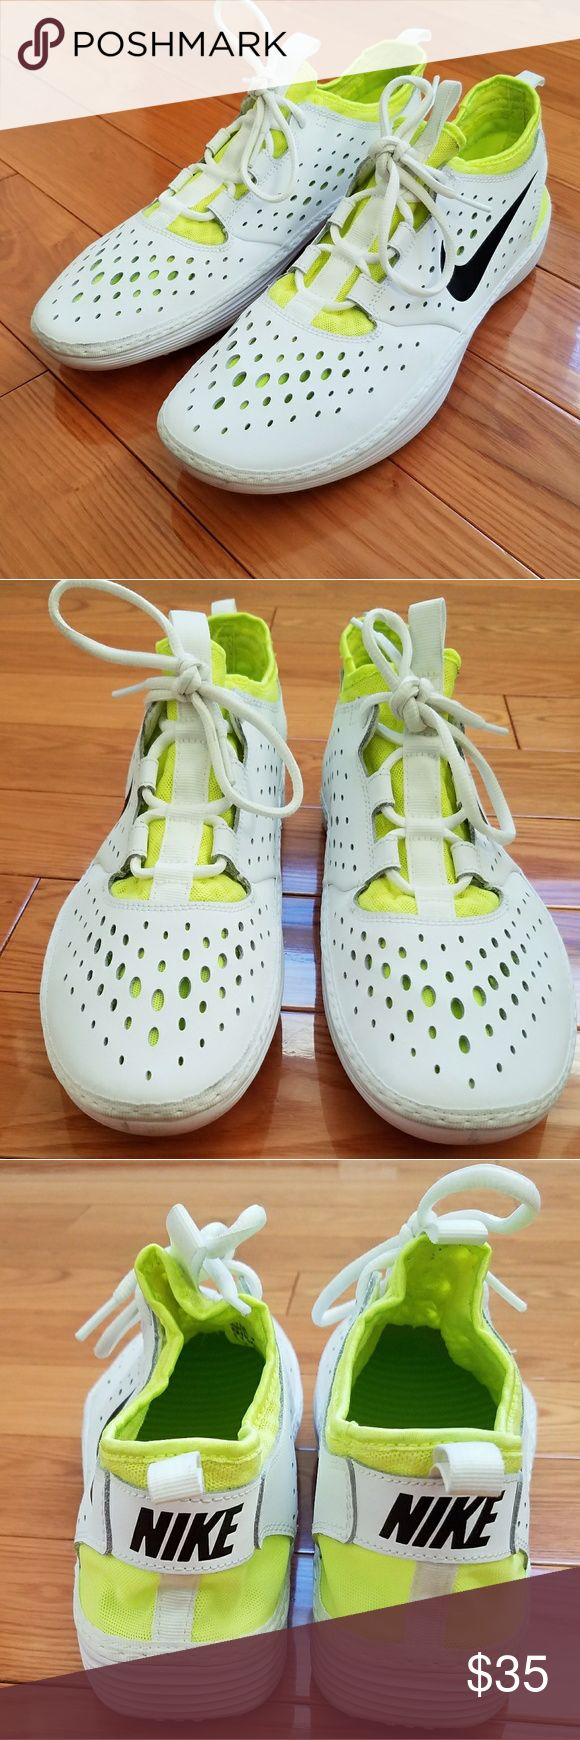 White and Neon Nike Sneakers Lightly worn Nike sneakers in men size US 11, women size US 13   Unisex style sneaker   White and Neon color with Nike swoosh detail   Message with offers Nike Shoes Sneakers